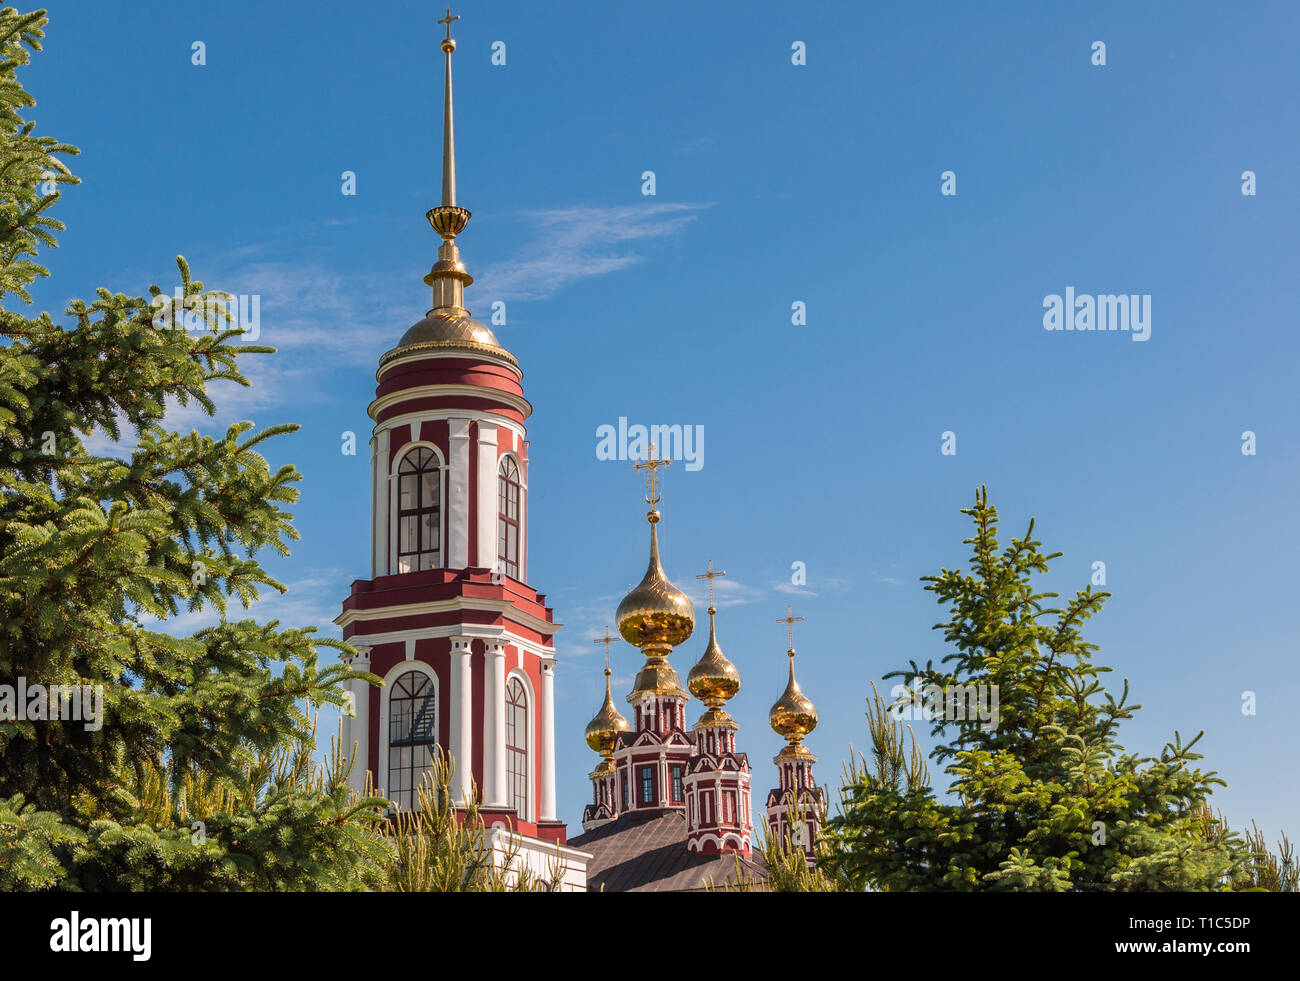 Church of Archangel Michael in Suzdal, Russia - Stock Image